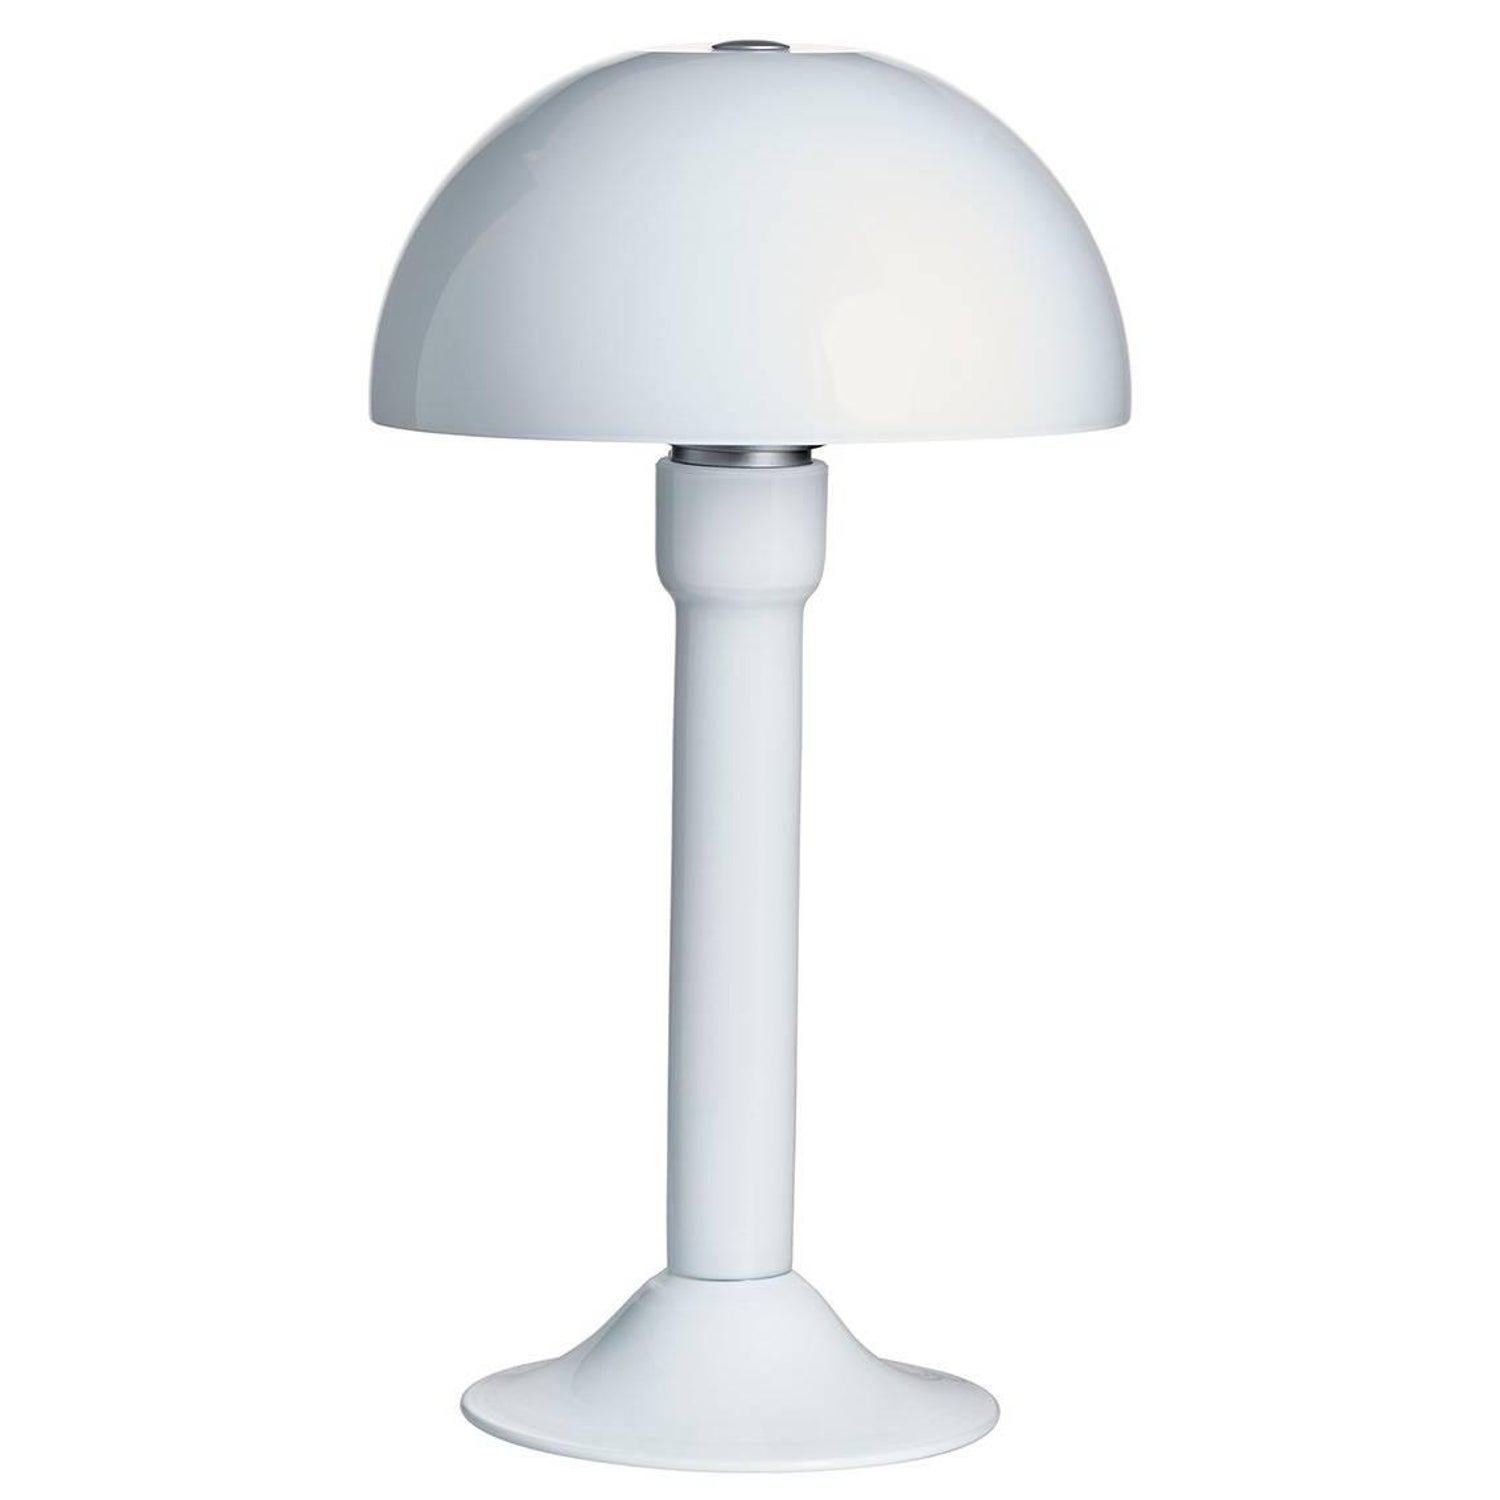 Milk glass table lamps 106 for sale at 1stdibs cupola carlo moretti contemporary mouth blown murano milk glass table lamp geotapseo Image collections